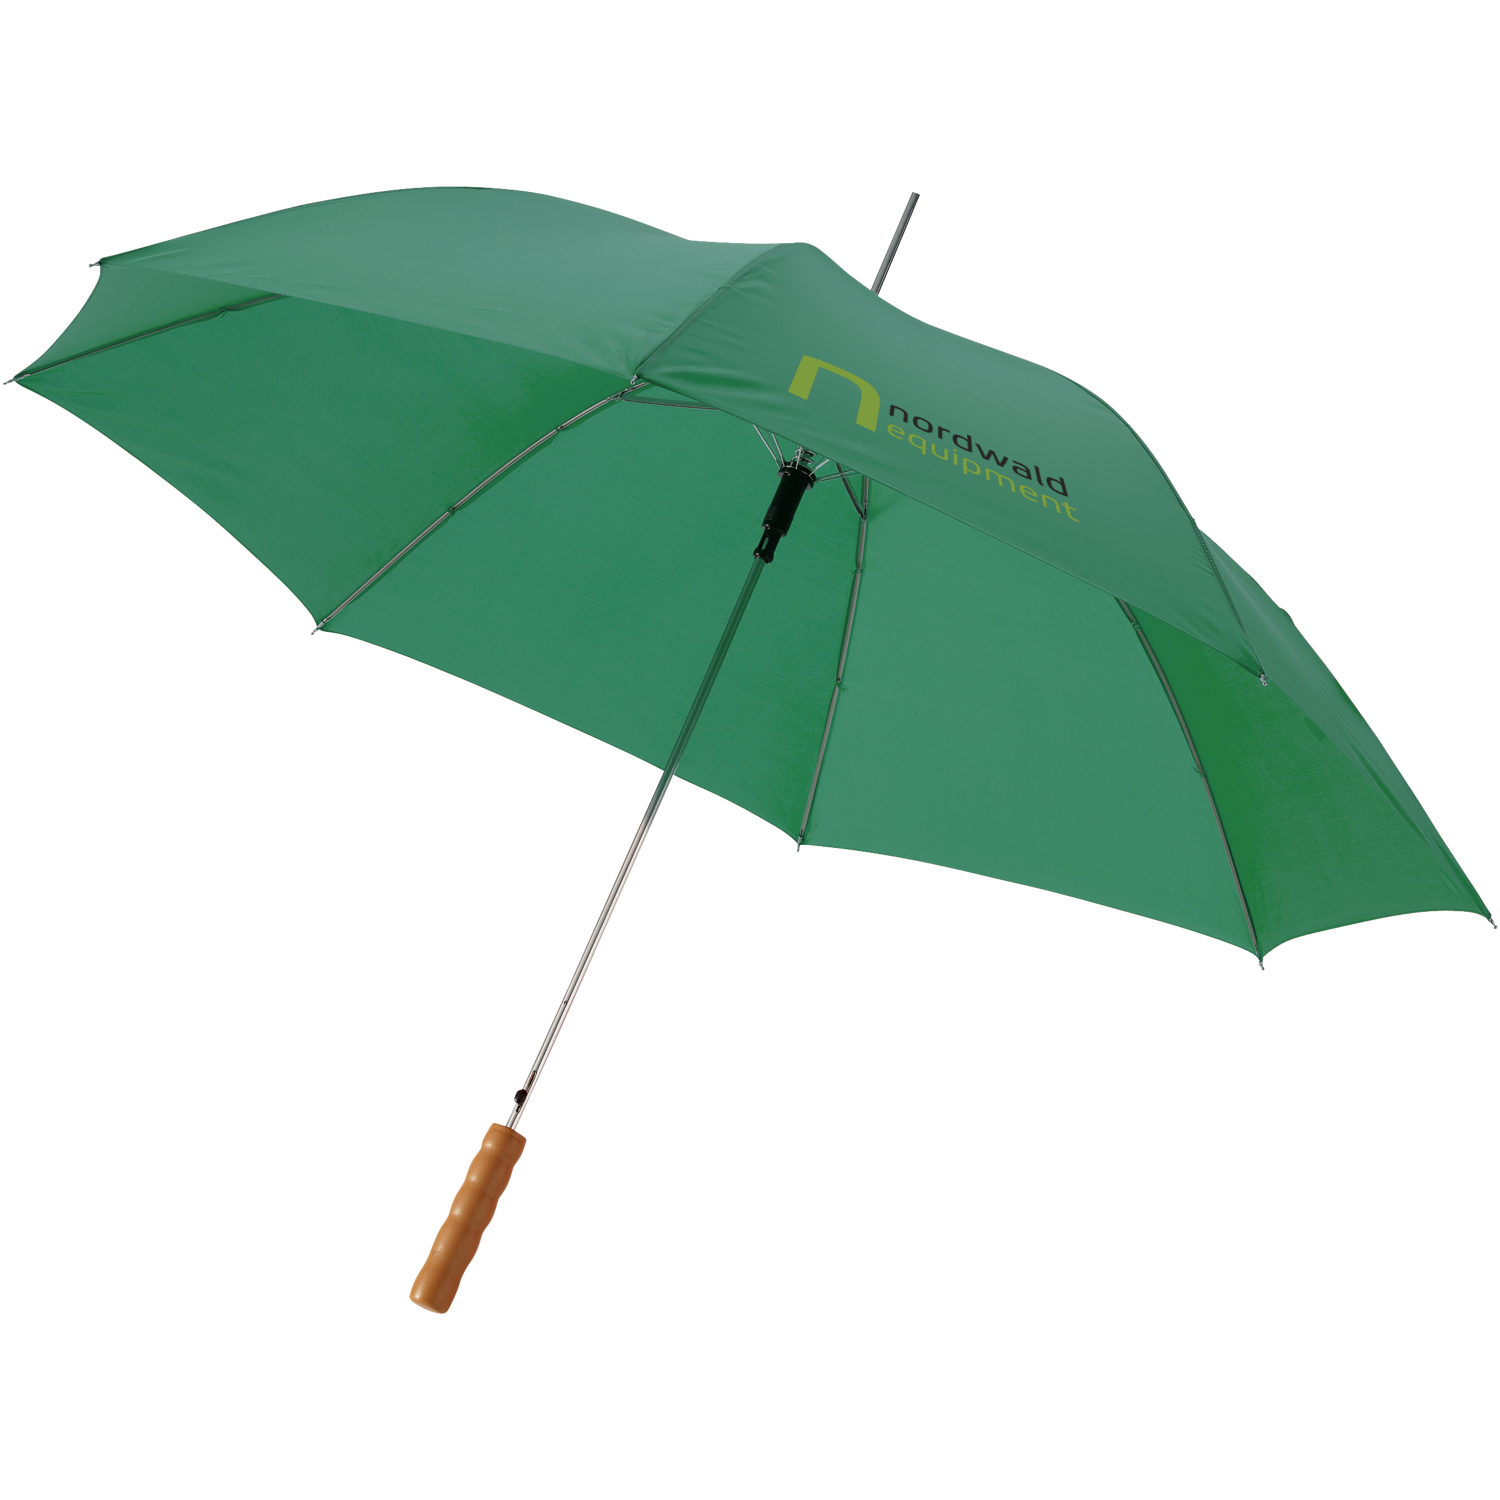 Lisa 23Inch Auto Open Umbrella With Wooden Handle